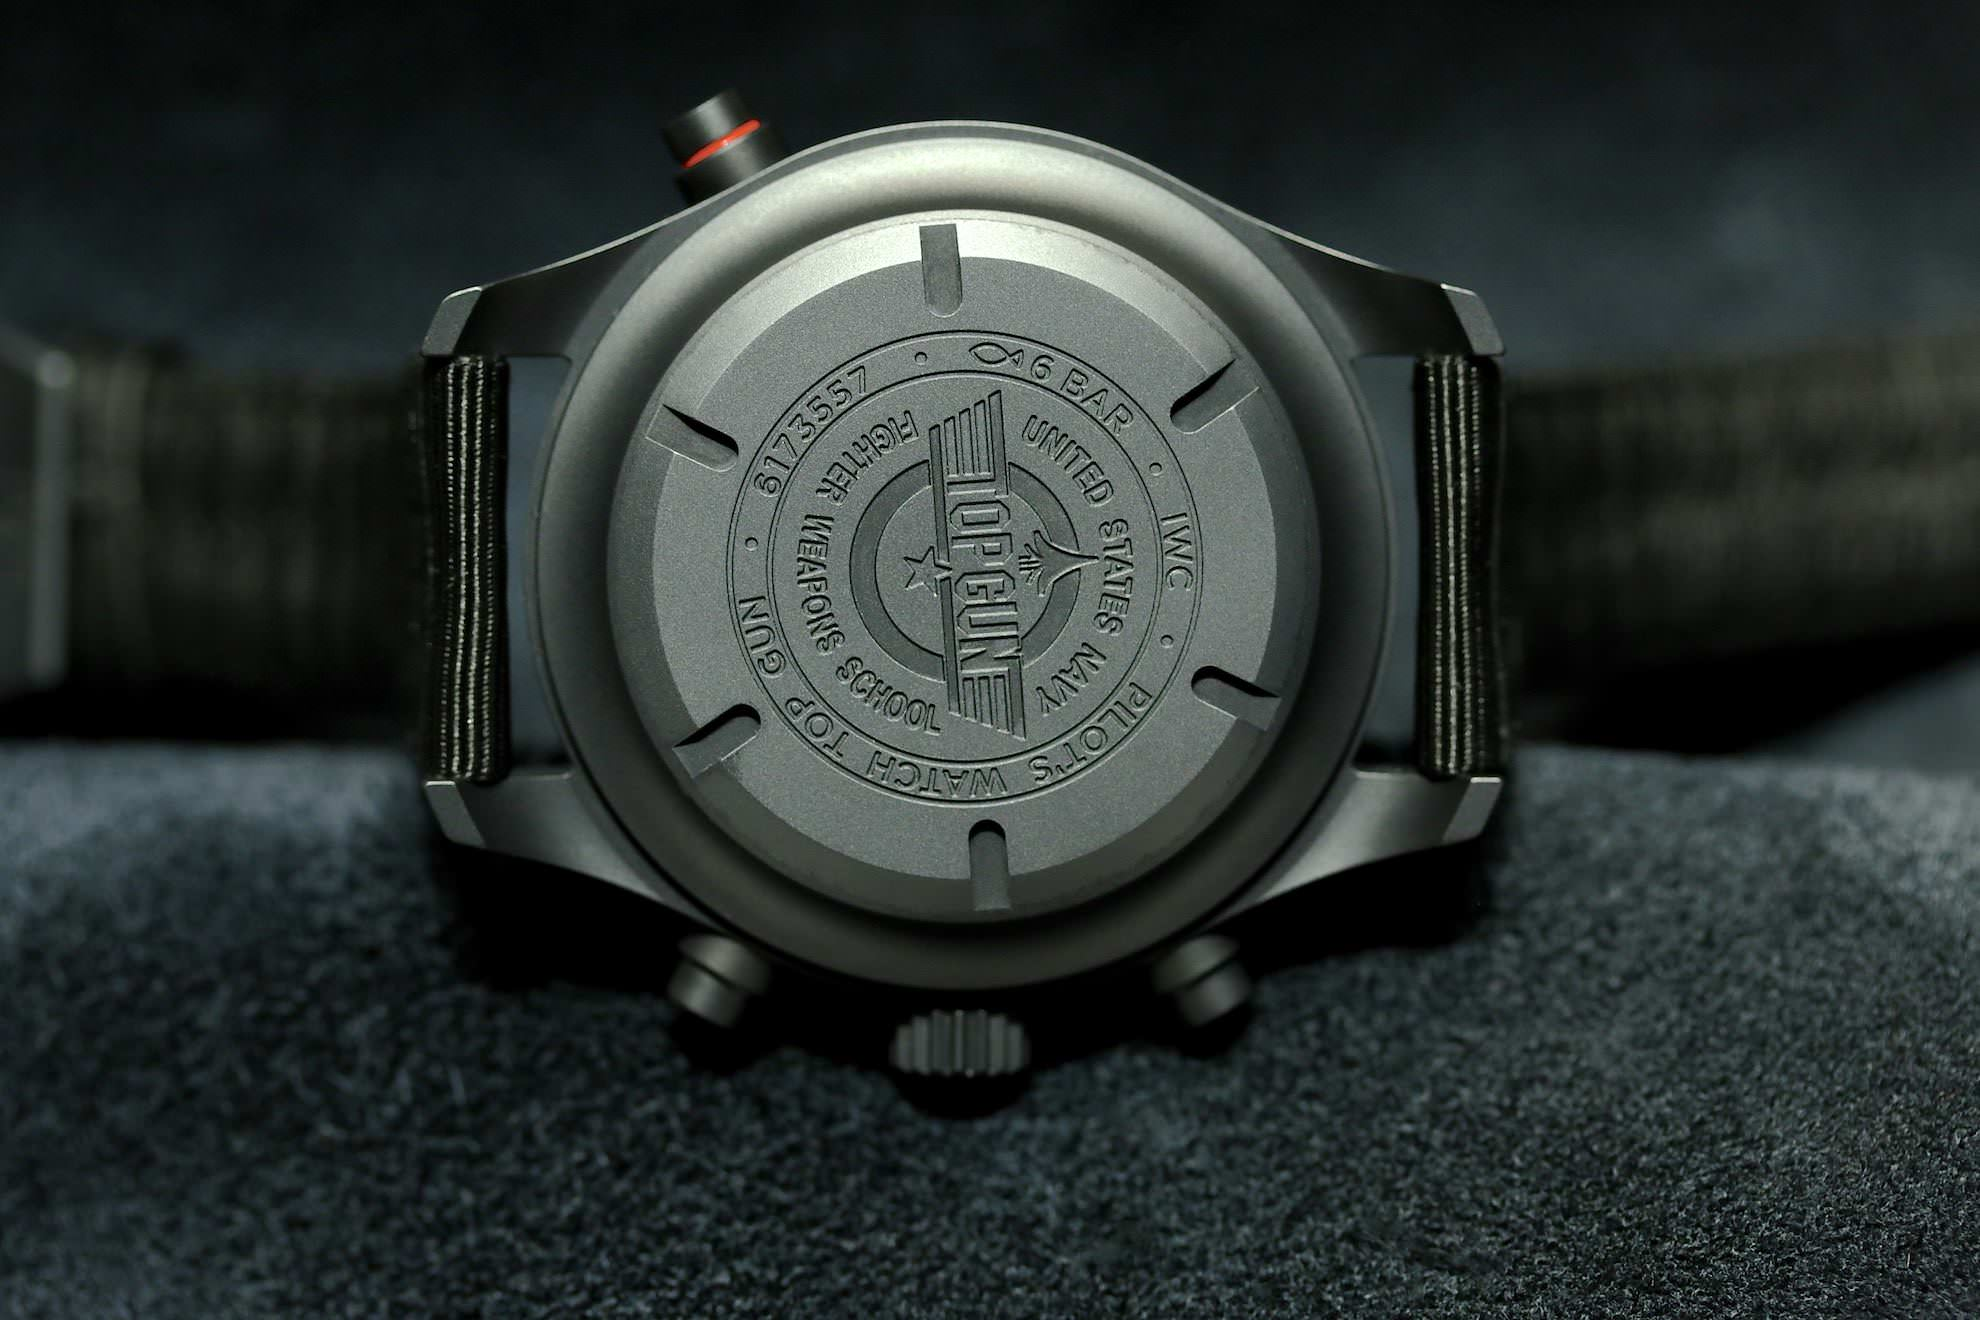 IWC_Pilots_Watch_Double_Chronograph_Top_Gun_Ceratanium_4